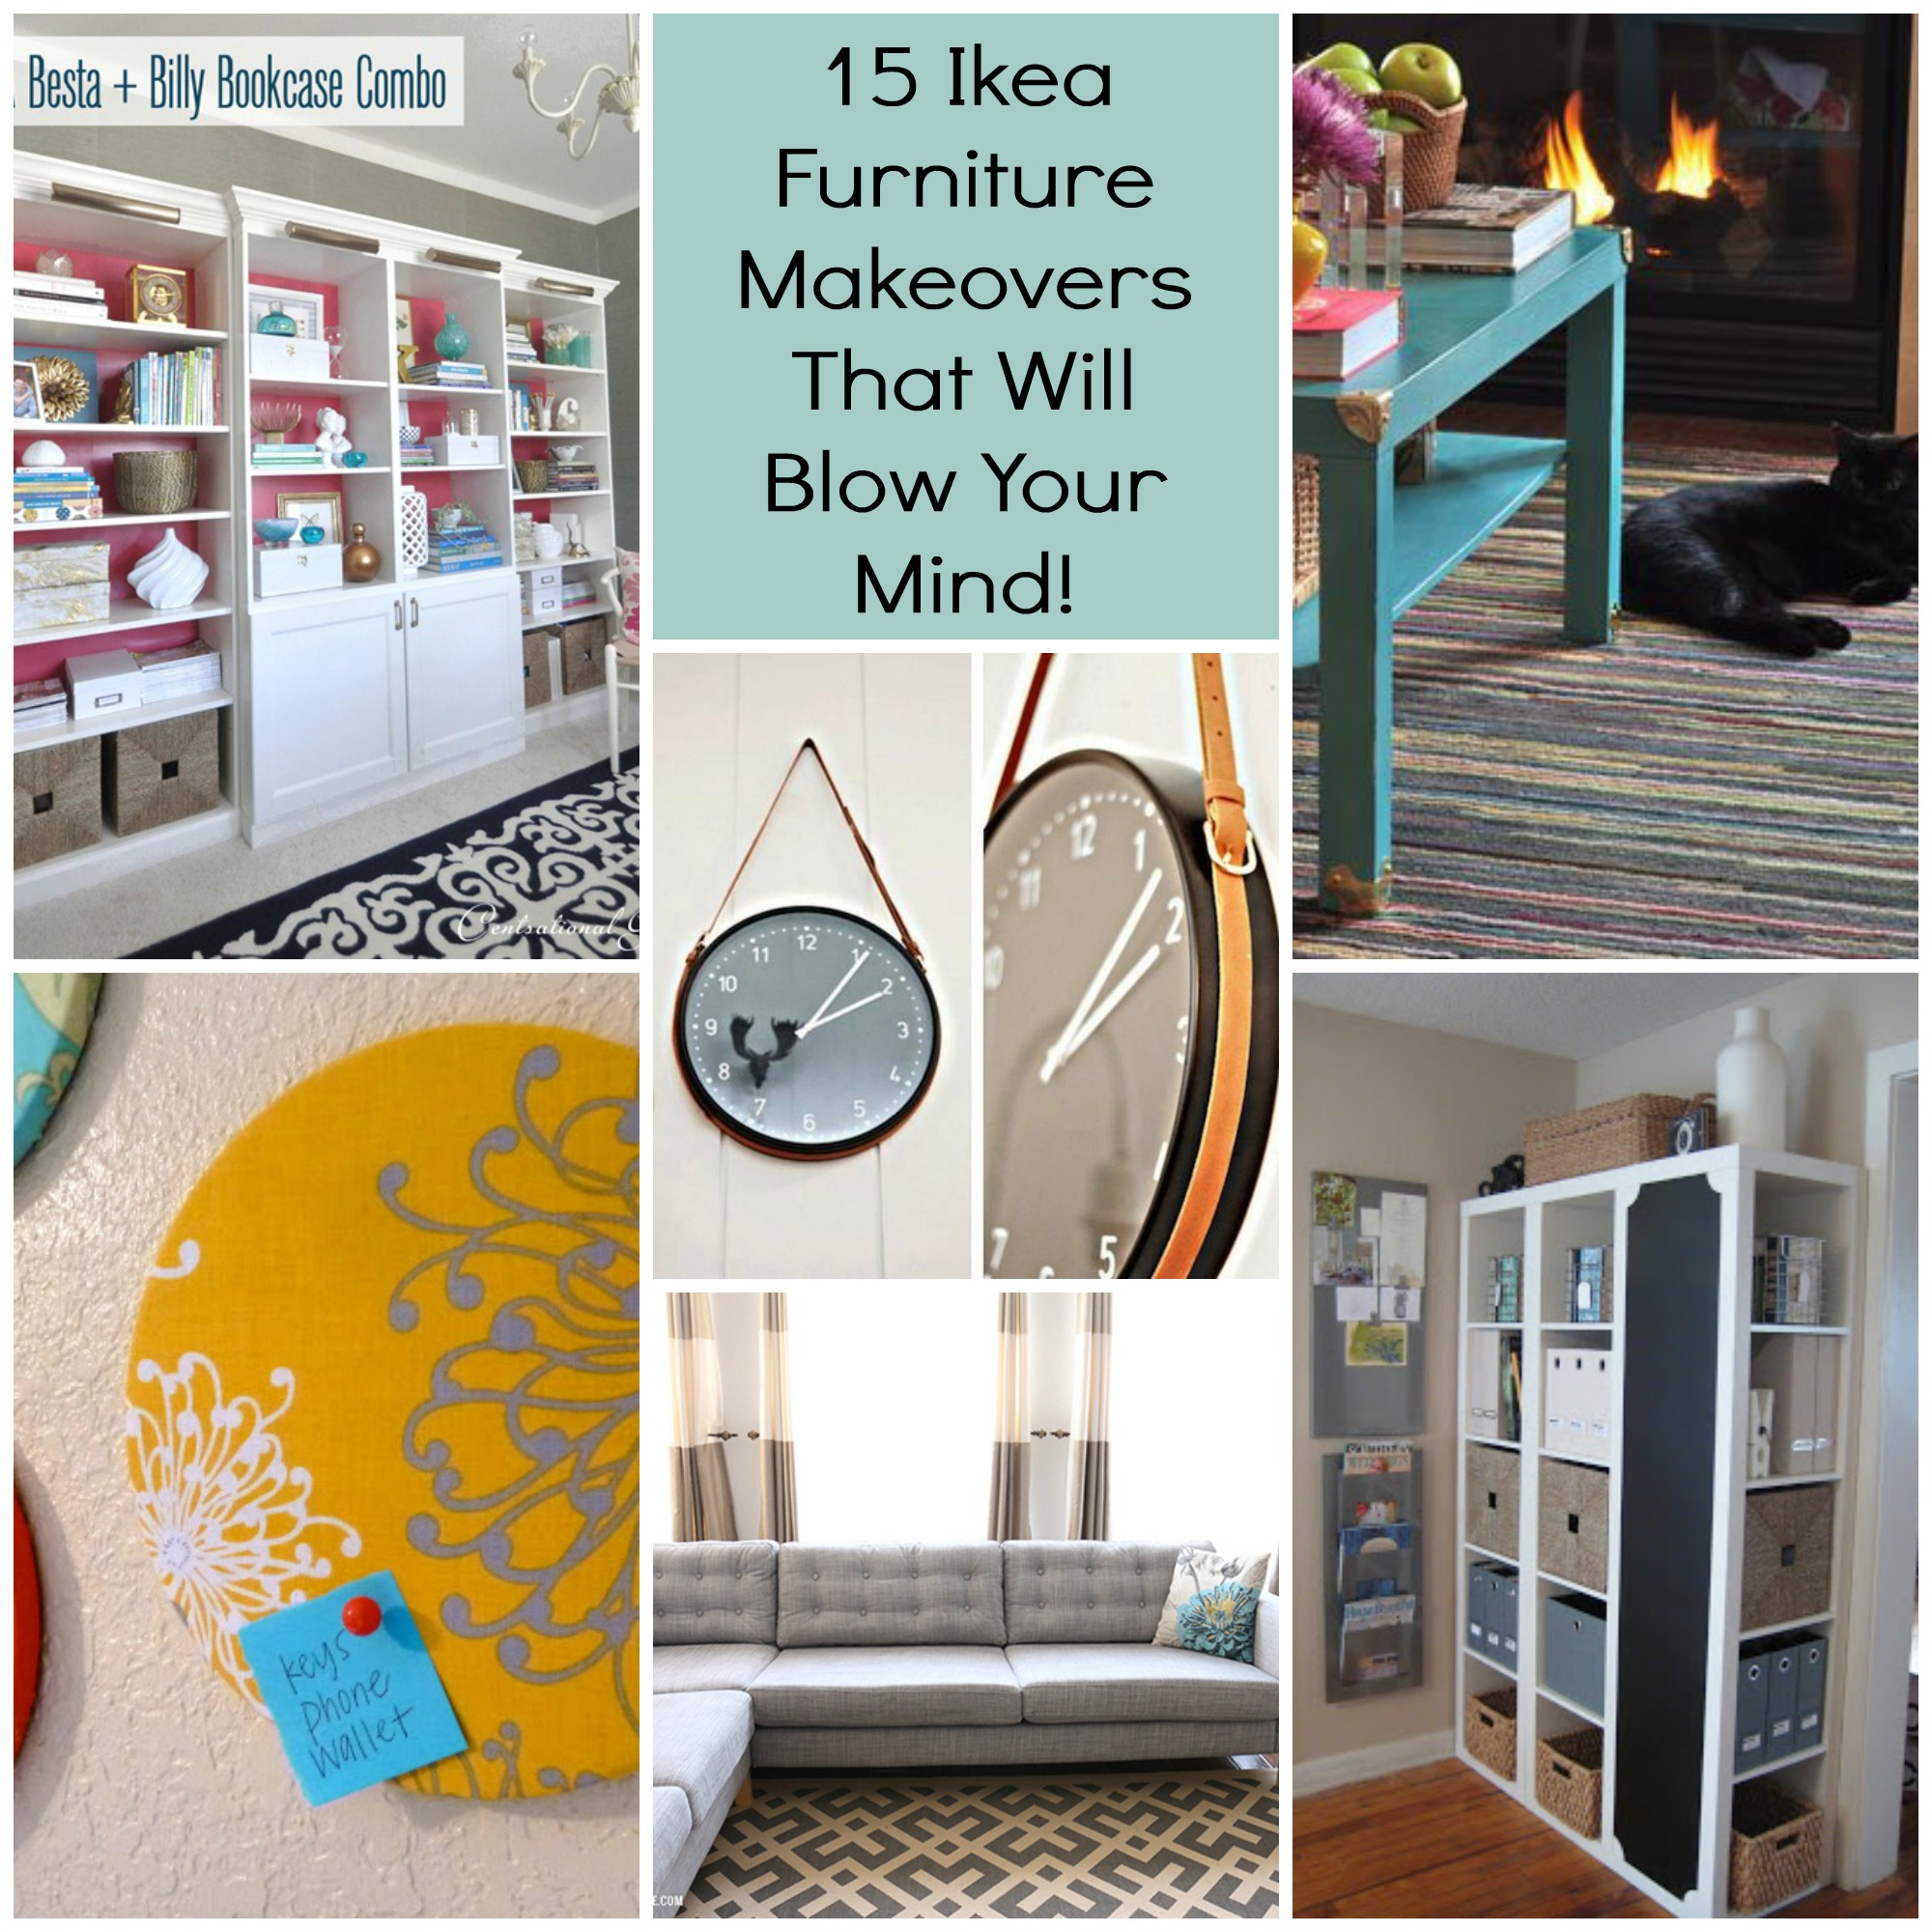 15 ikea furniture makeovers that will blow your mind Ikea furniture makeover